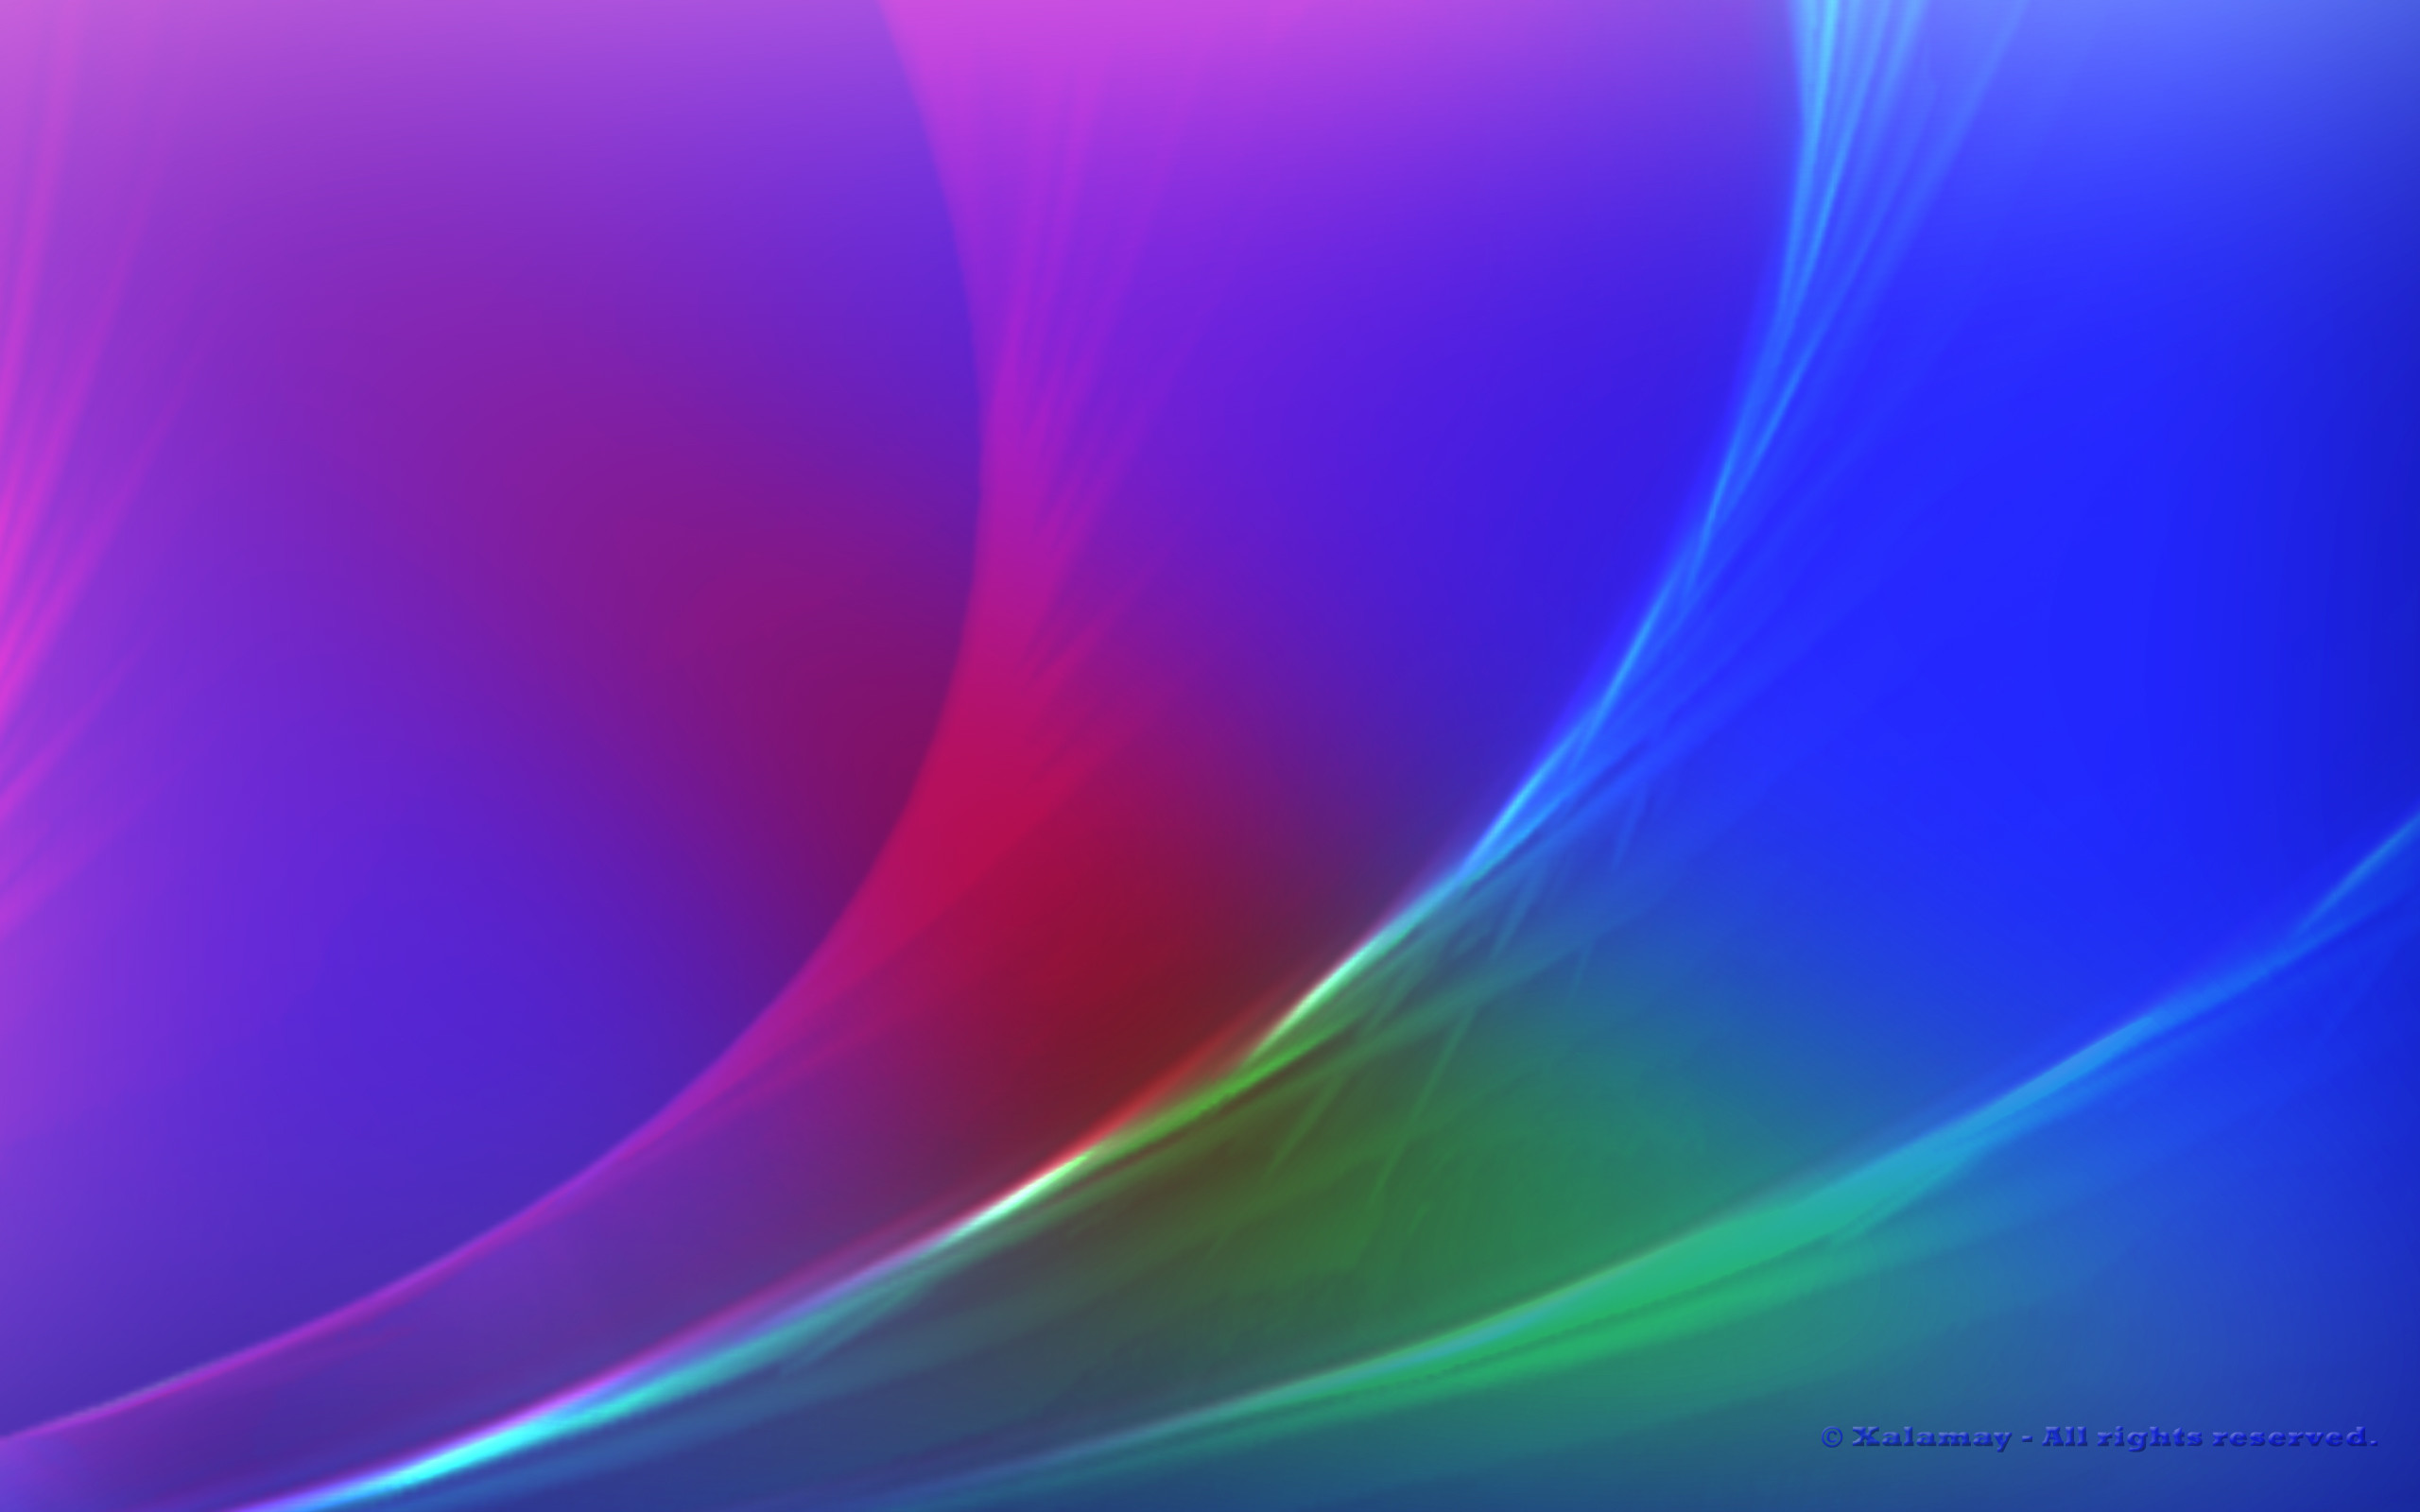 Unique Colorful Wallpapers   Abstract Wallpapers   Pinterest   Wallpaper  and Colorful wallpaper